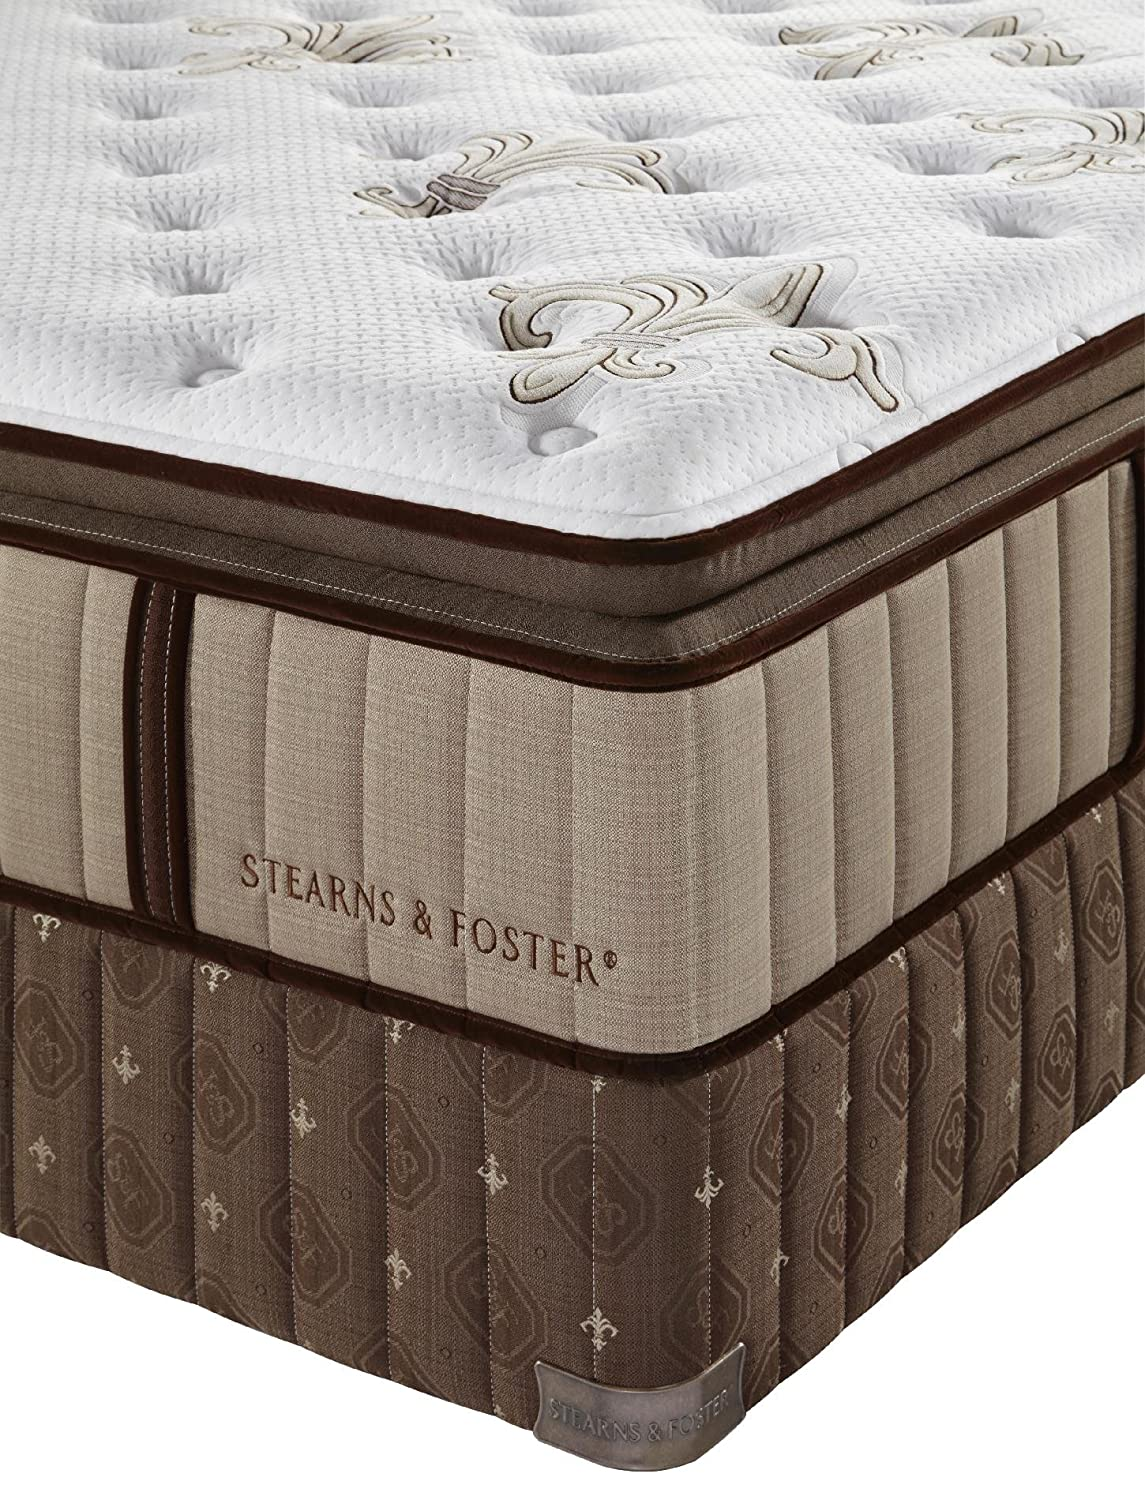 stearns and foster pillow top. Amazon.com: Stearns And Foster Estate Luxury Plush Pillow Top Mattress(Queen): Kitchen \u0026 Dining